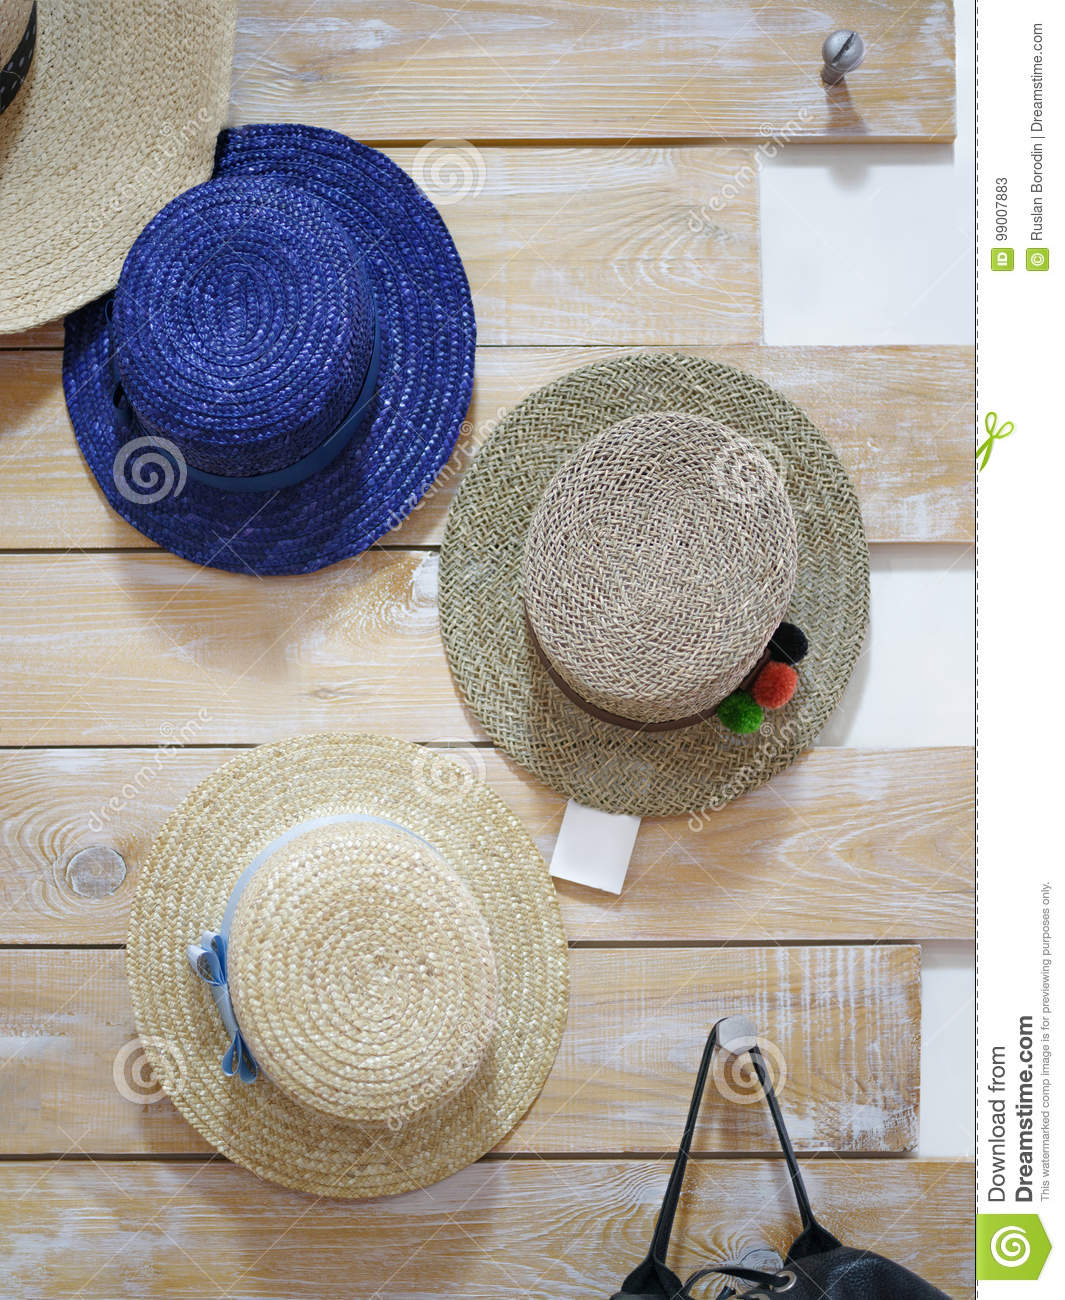 4059760e996 Handmade Pretty Women Hats. Classic Summer Hats Hanging In A Store ...